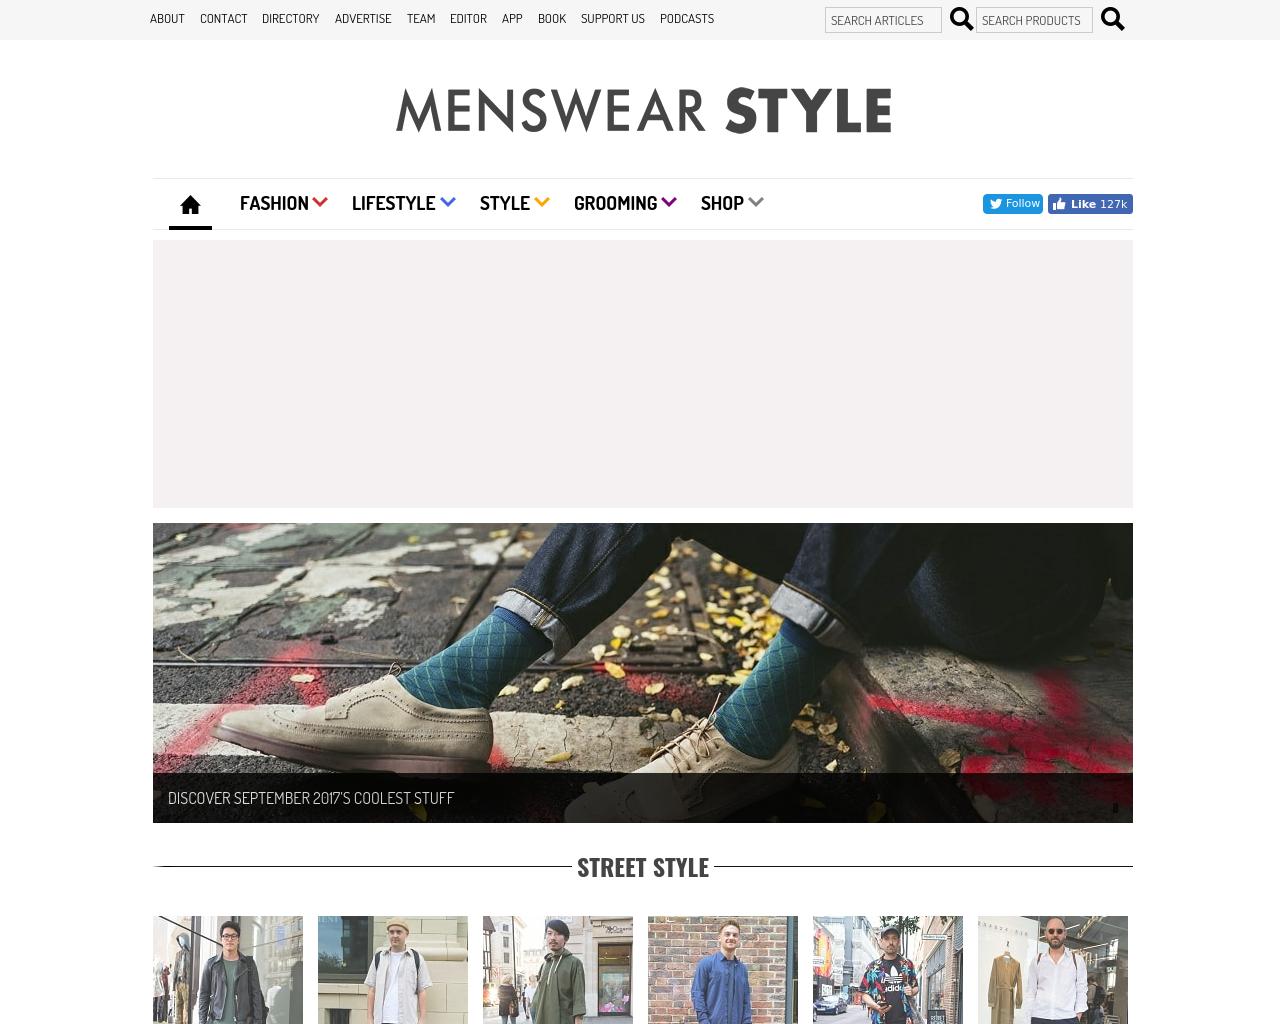 Menswear-Style-Advertising-Reviews-Pricing